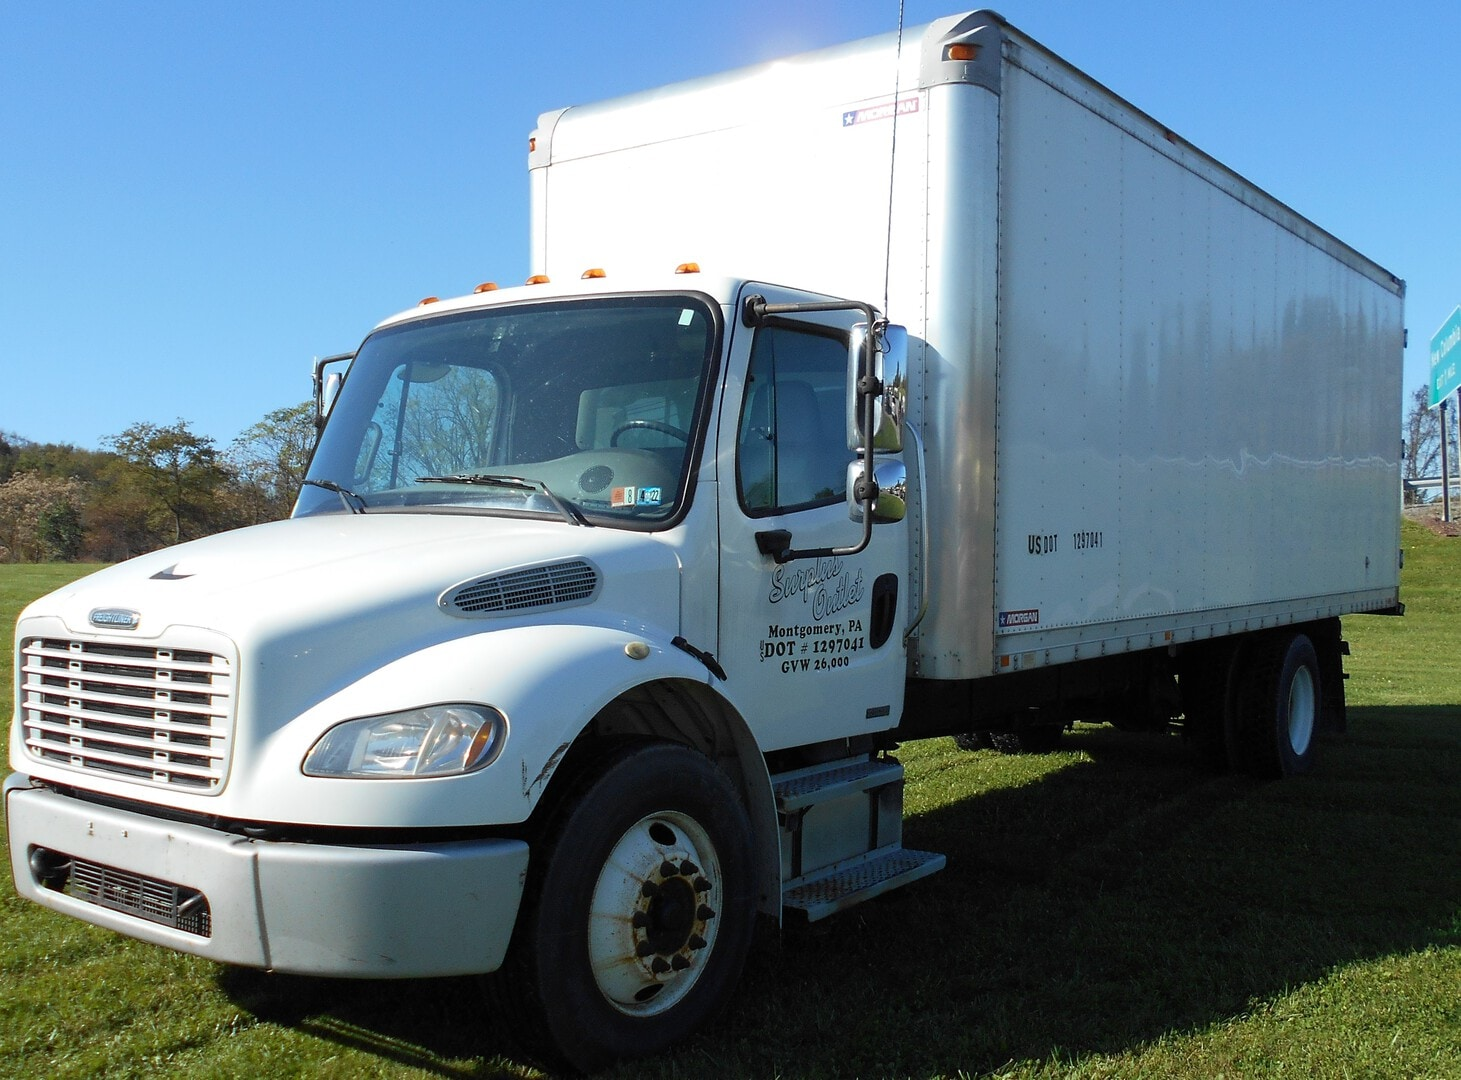 Used, 2008, Freightliner, Business Class M2 106, Conventional Trucks